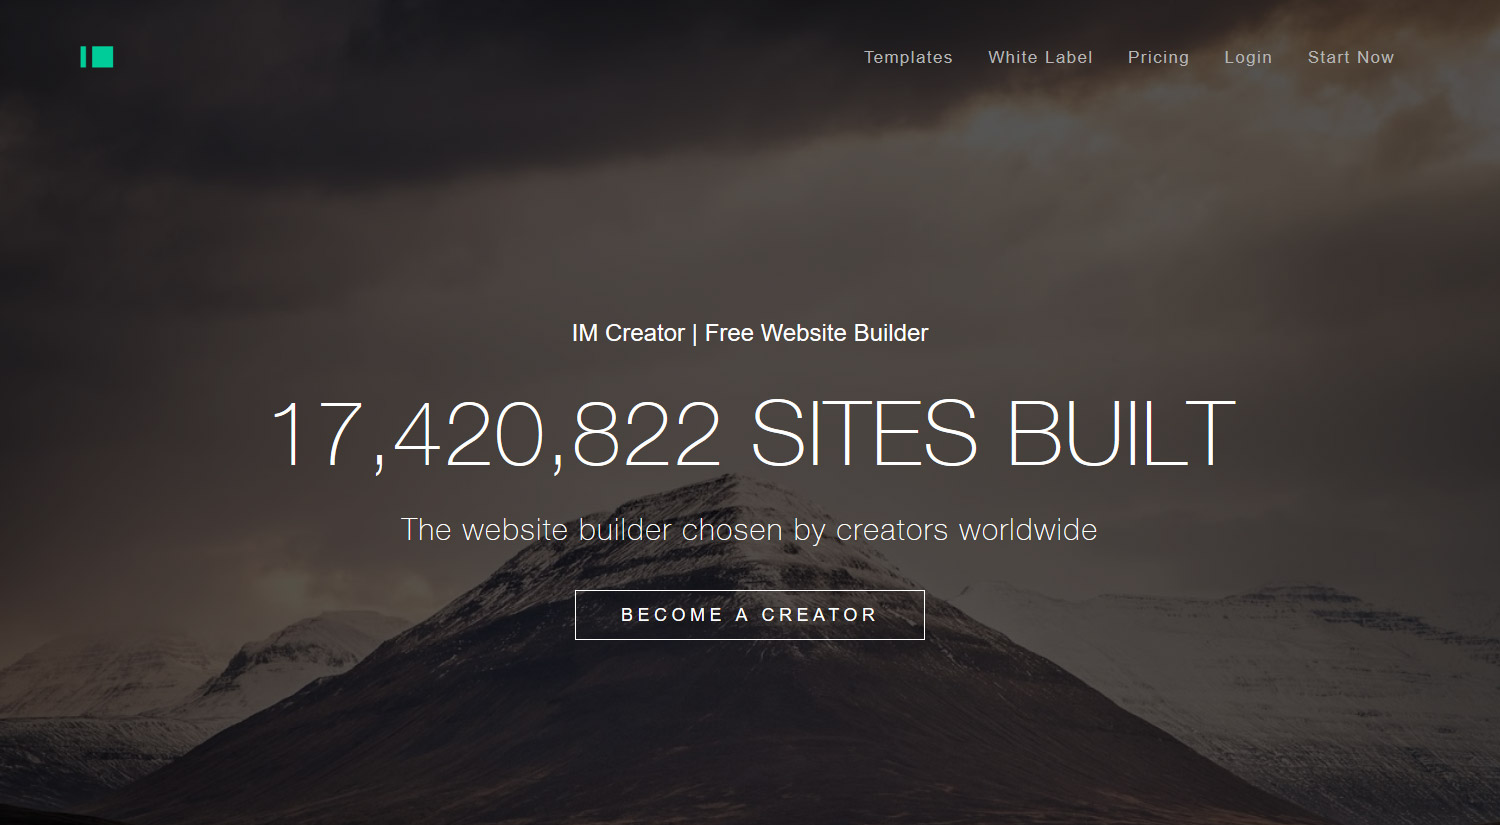 Free website hosting and first level domain name at Imcreator